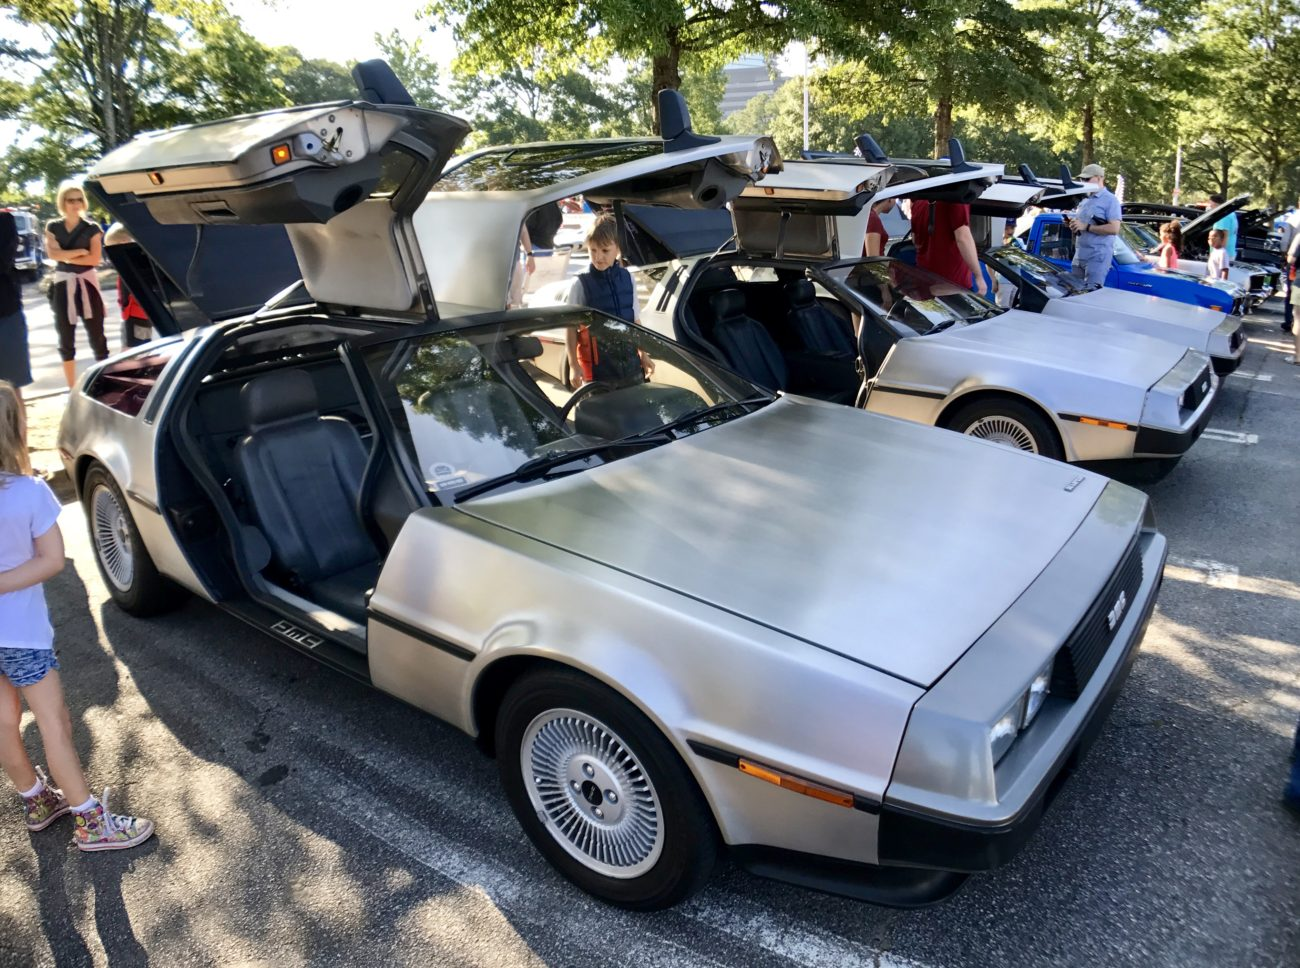 Where else besides Caffeine & Octane can you see 3 DeLorean DMC-12's?